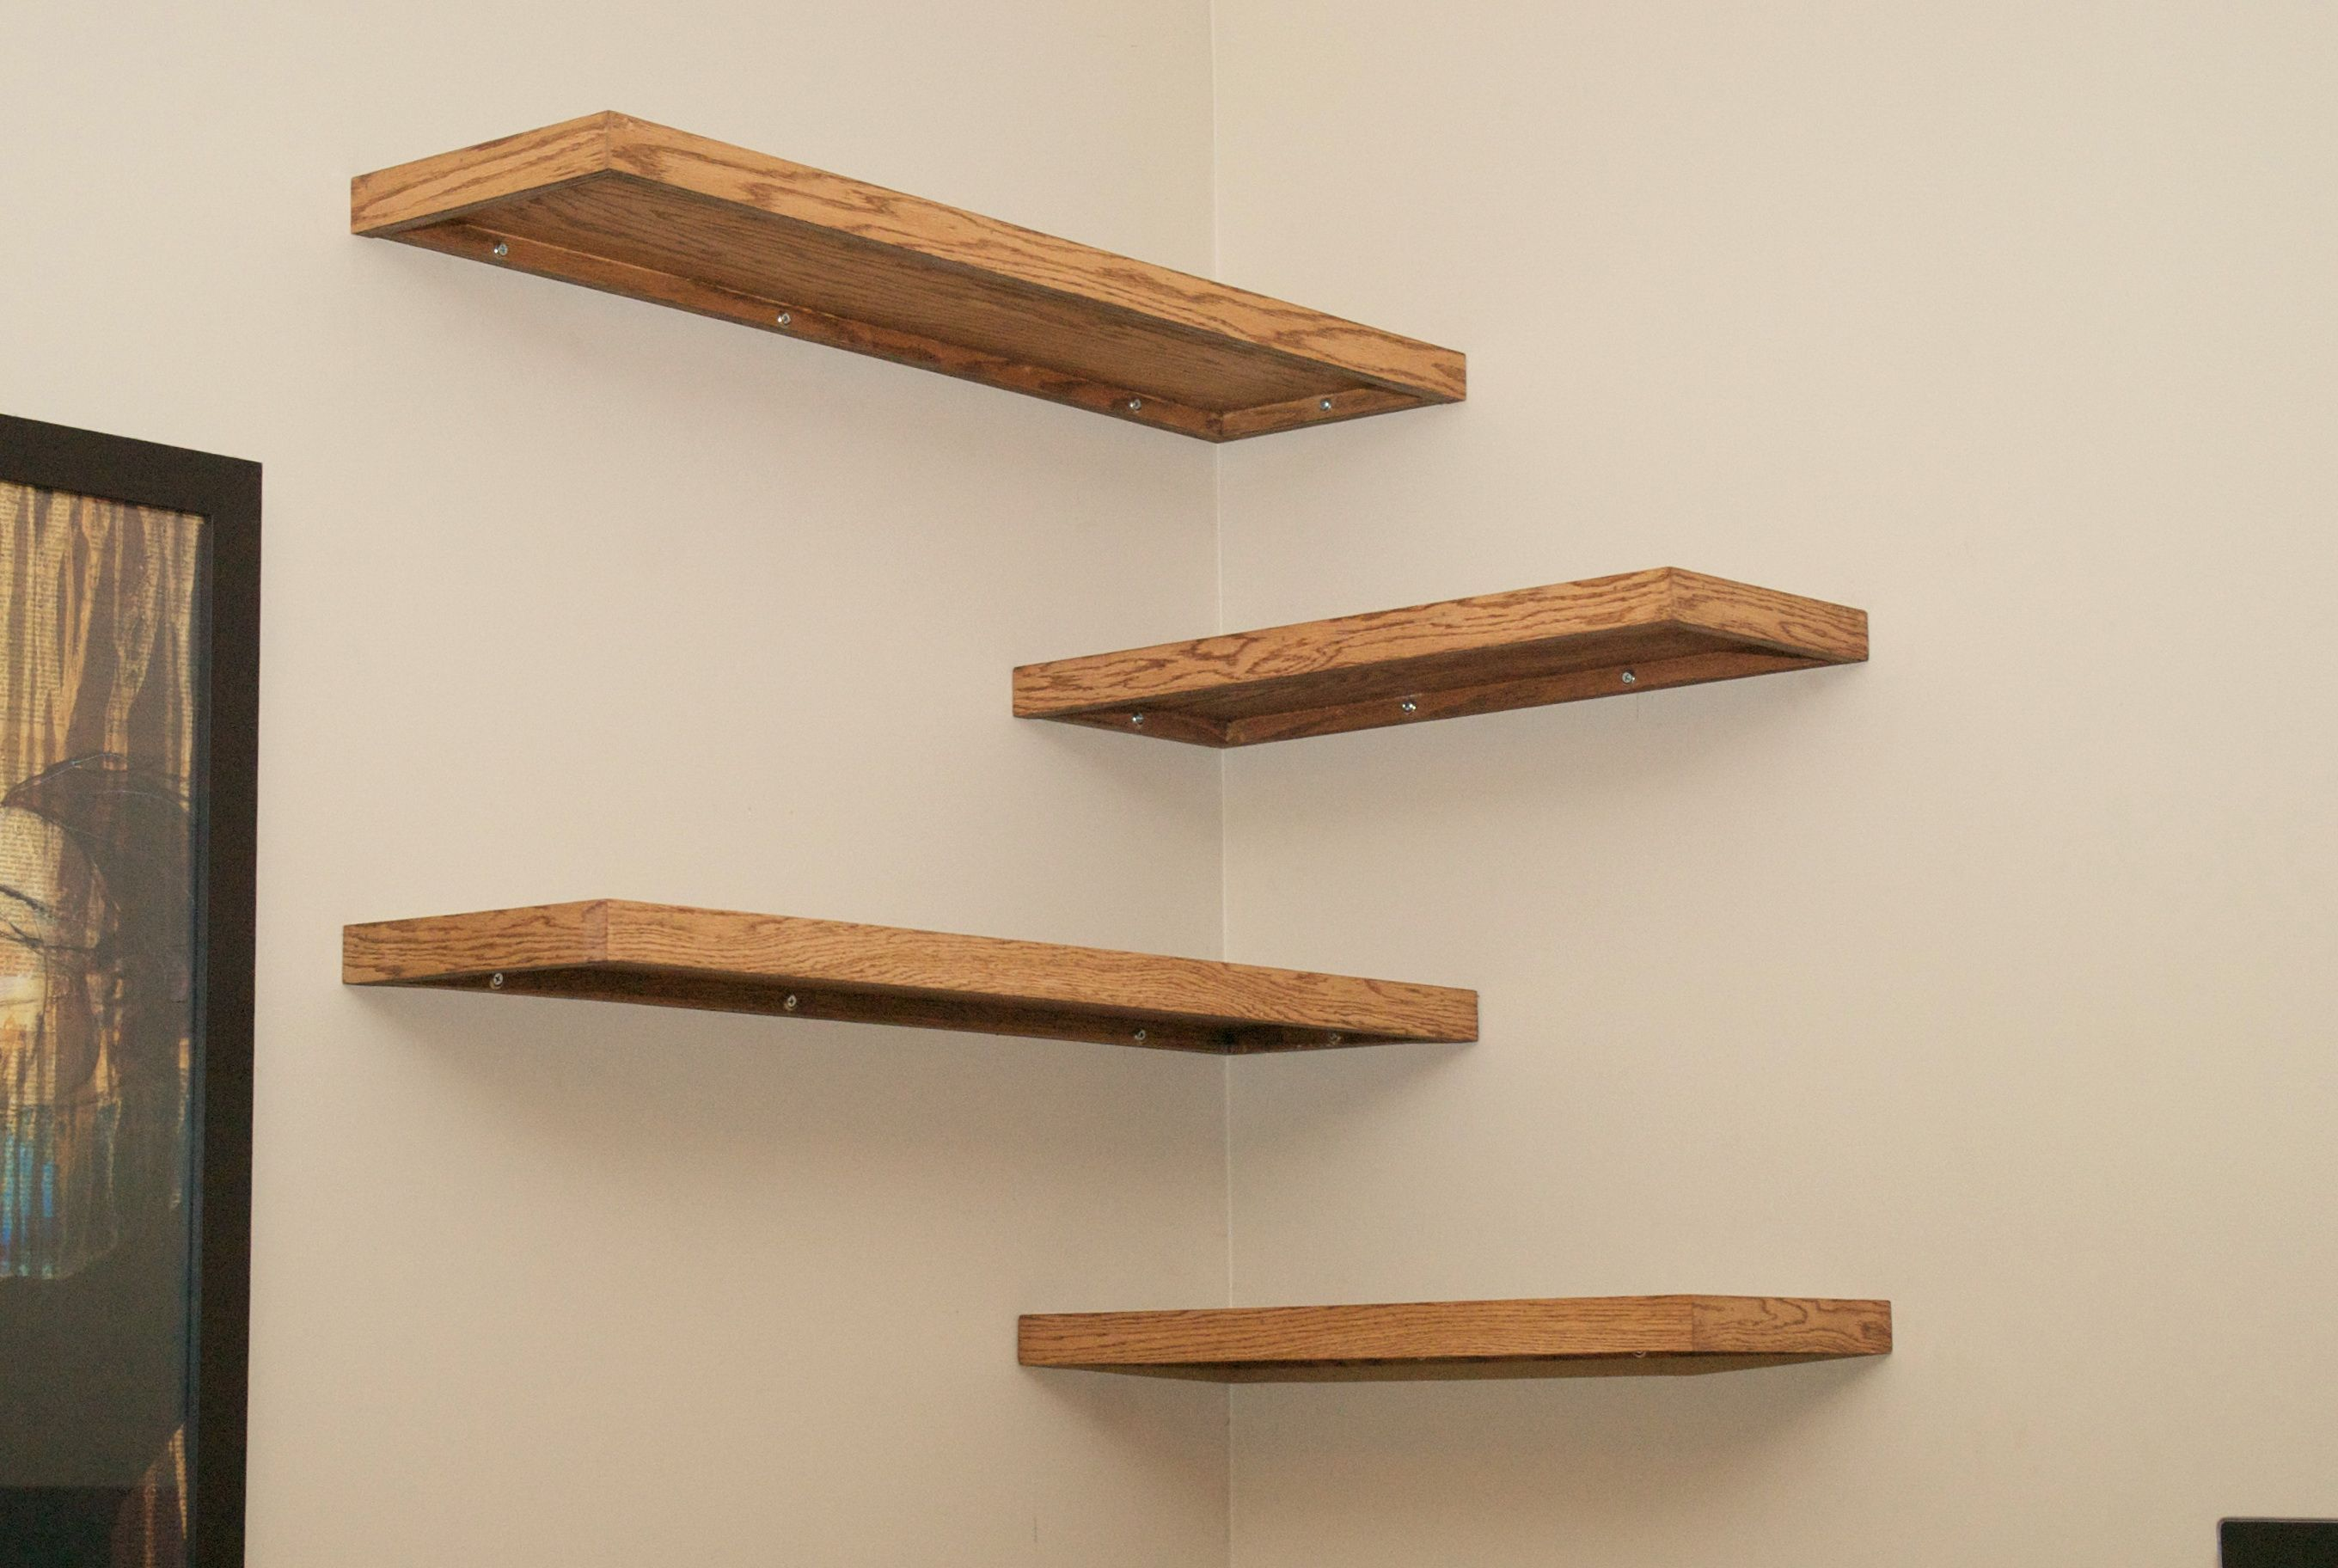 Wall To Wall Shelves image result for diy wall bookshelf | floating shelves diy